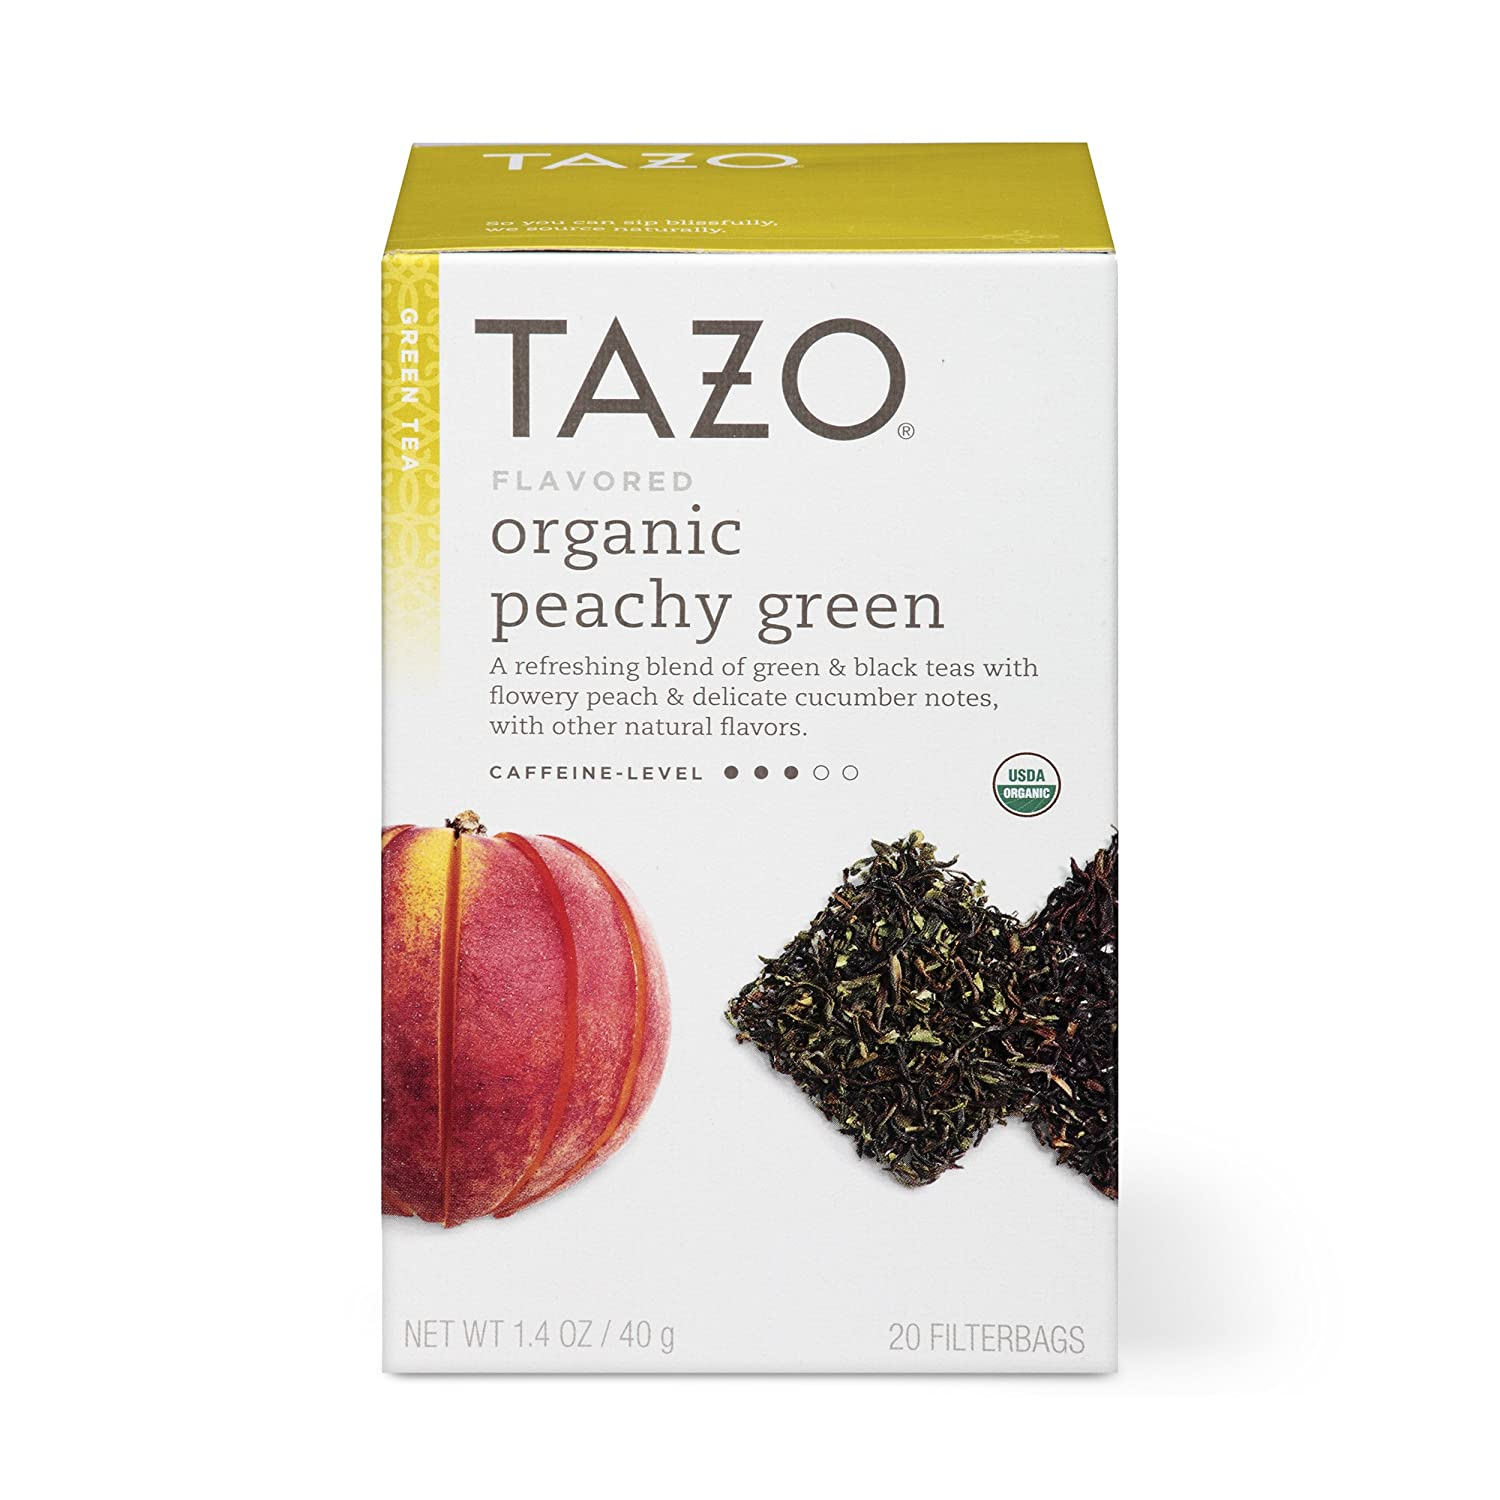 Tazo Organic Peachy Green Tea Filterbags, 20 Count (Pack of 6)